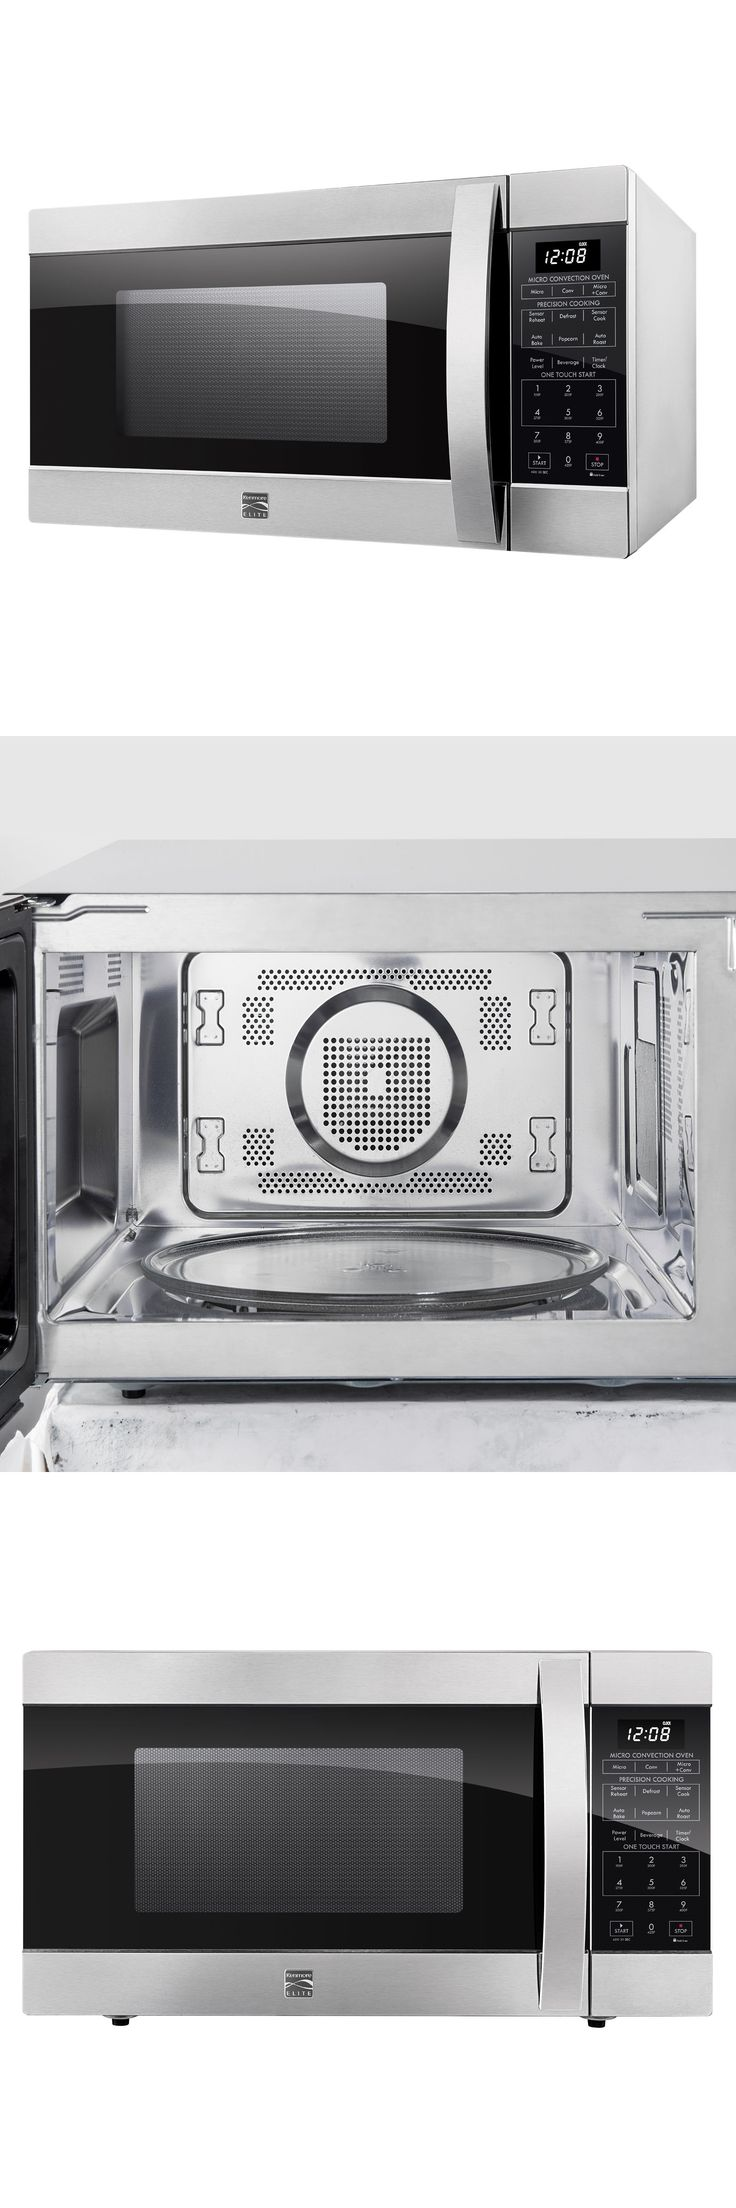 Microwave Ovens 150138: Kenmore Elite 1.5 Cu. Countertop Microwave Convection Oven Stainless 77603 Dent -> BUY IT NOW ONLY: $149.99 on eBay!